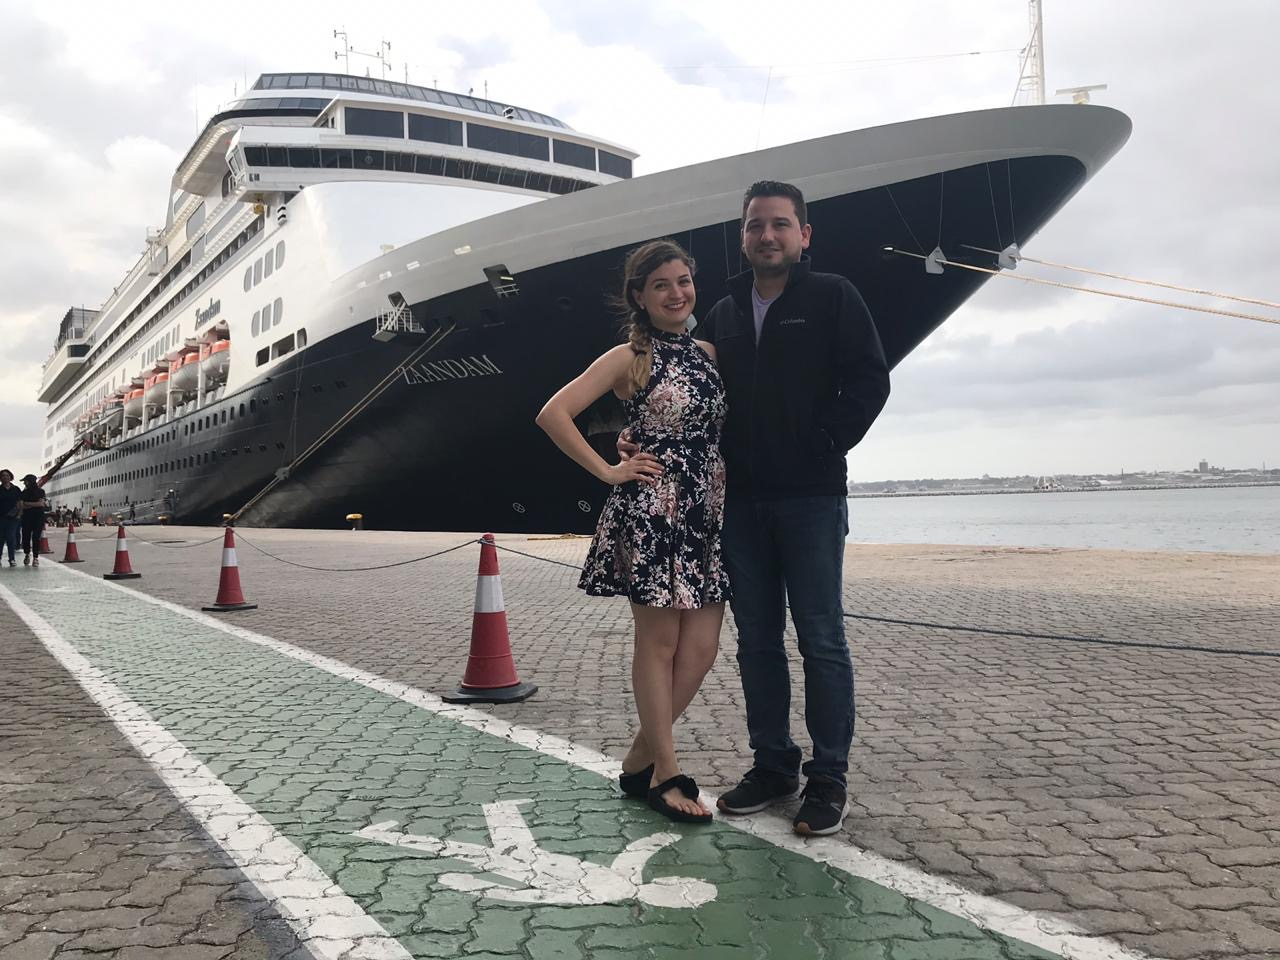 Joel Gonzalez & Yadira Garza boarded the Zaandam on March 7th to celebrate their honeymoon (CREDIT: Garza)